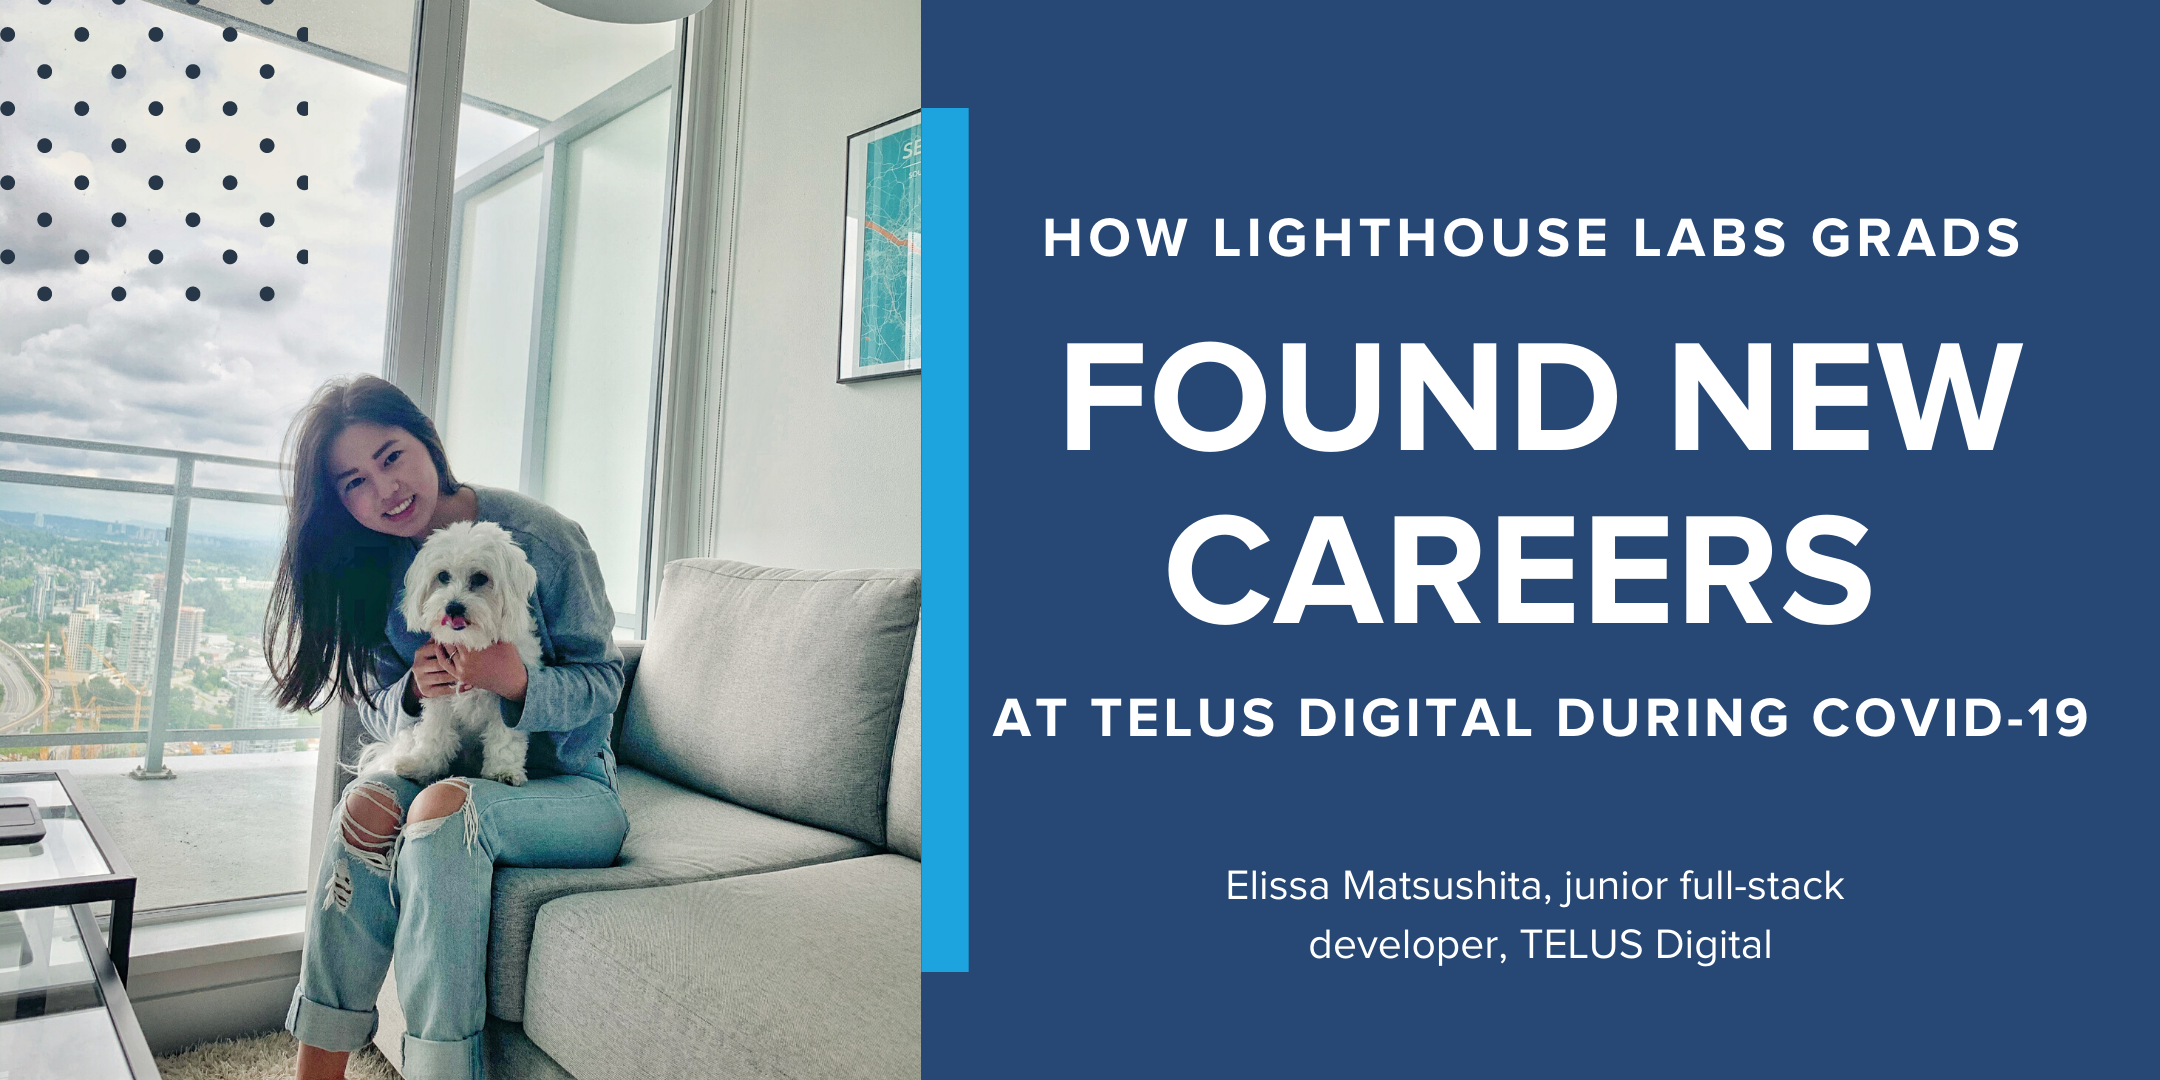 Lighthouse Labs Grads Hired at TELUS